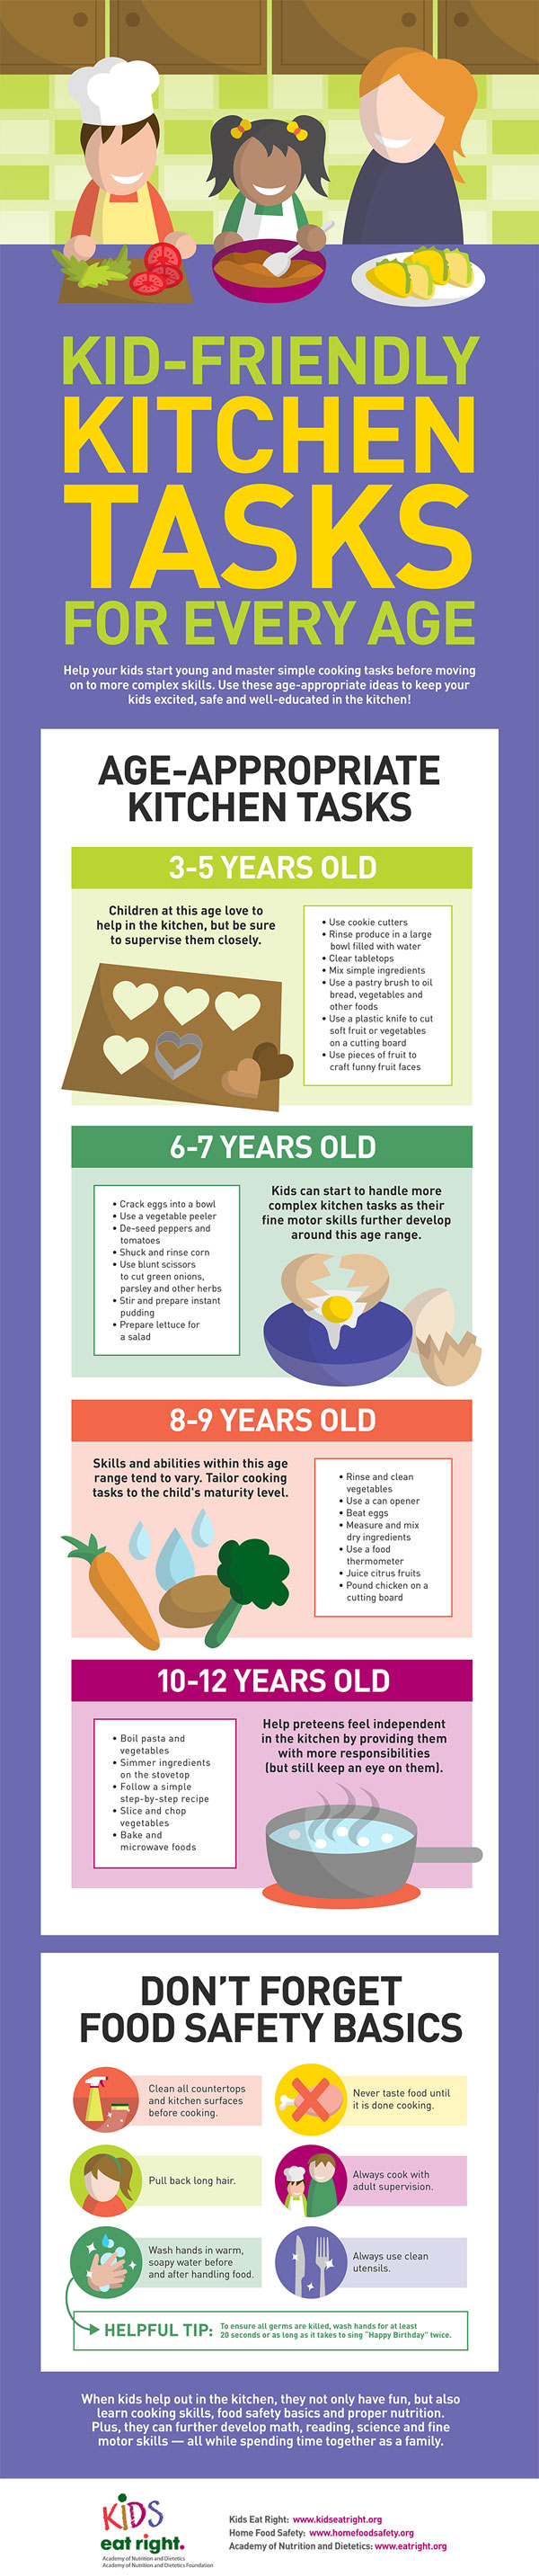 A smaller version of the Kid-friendly Kitchen Task infographic.